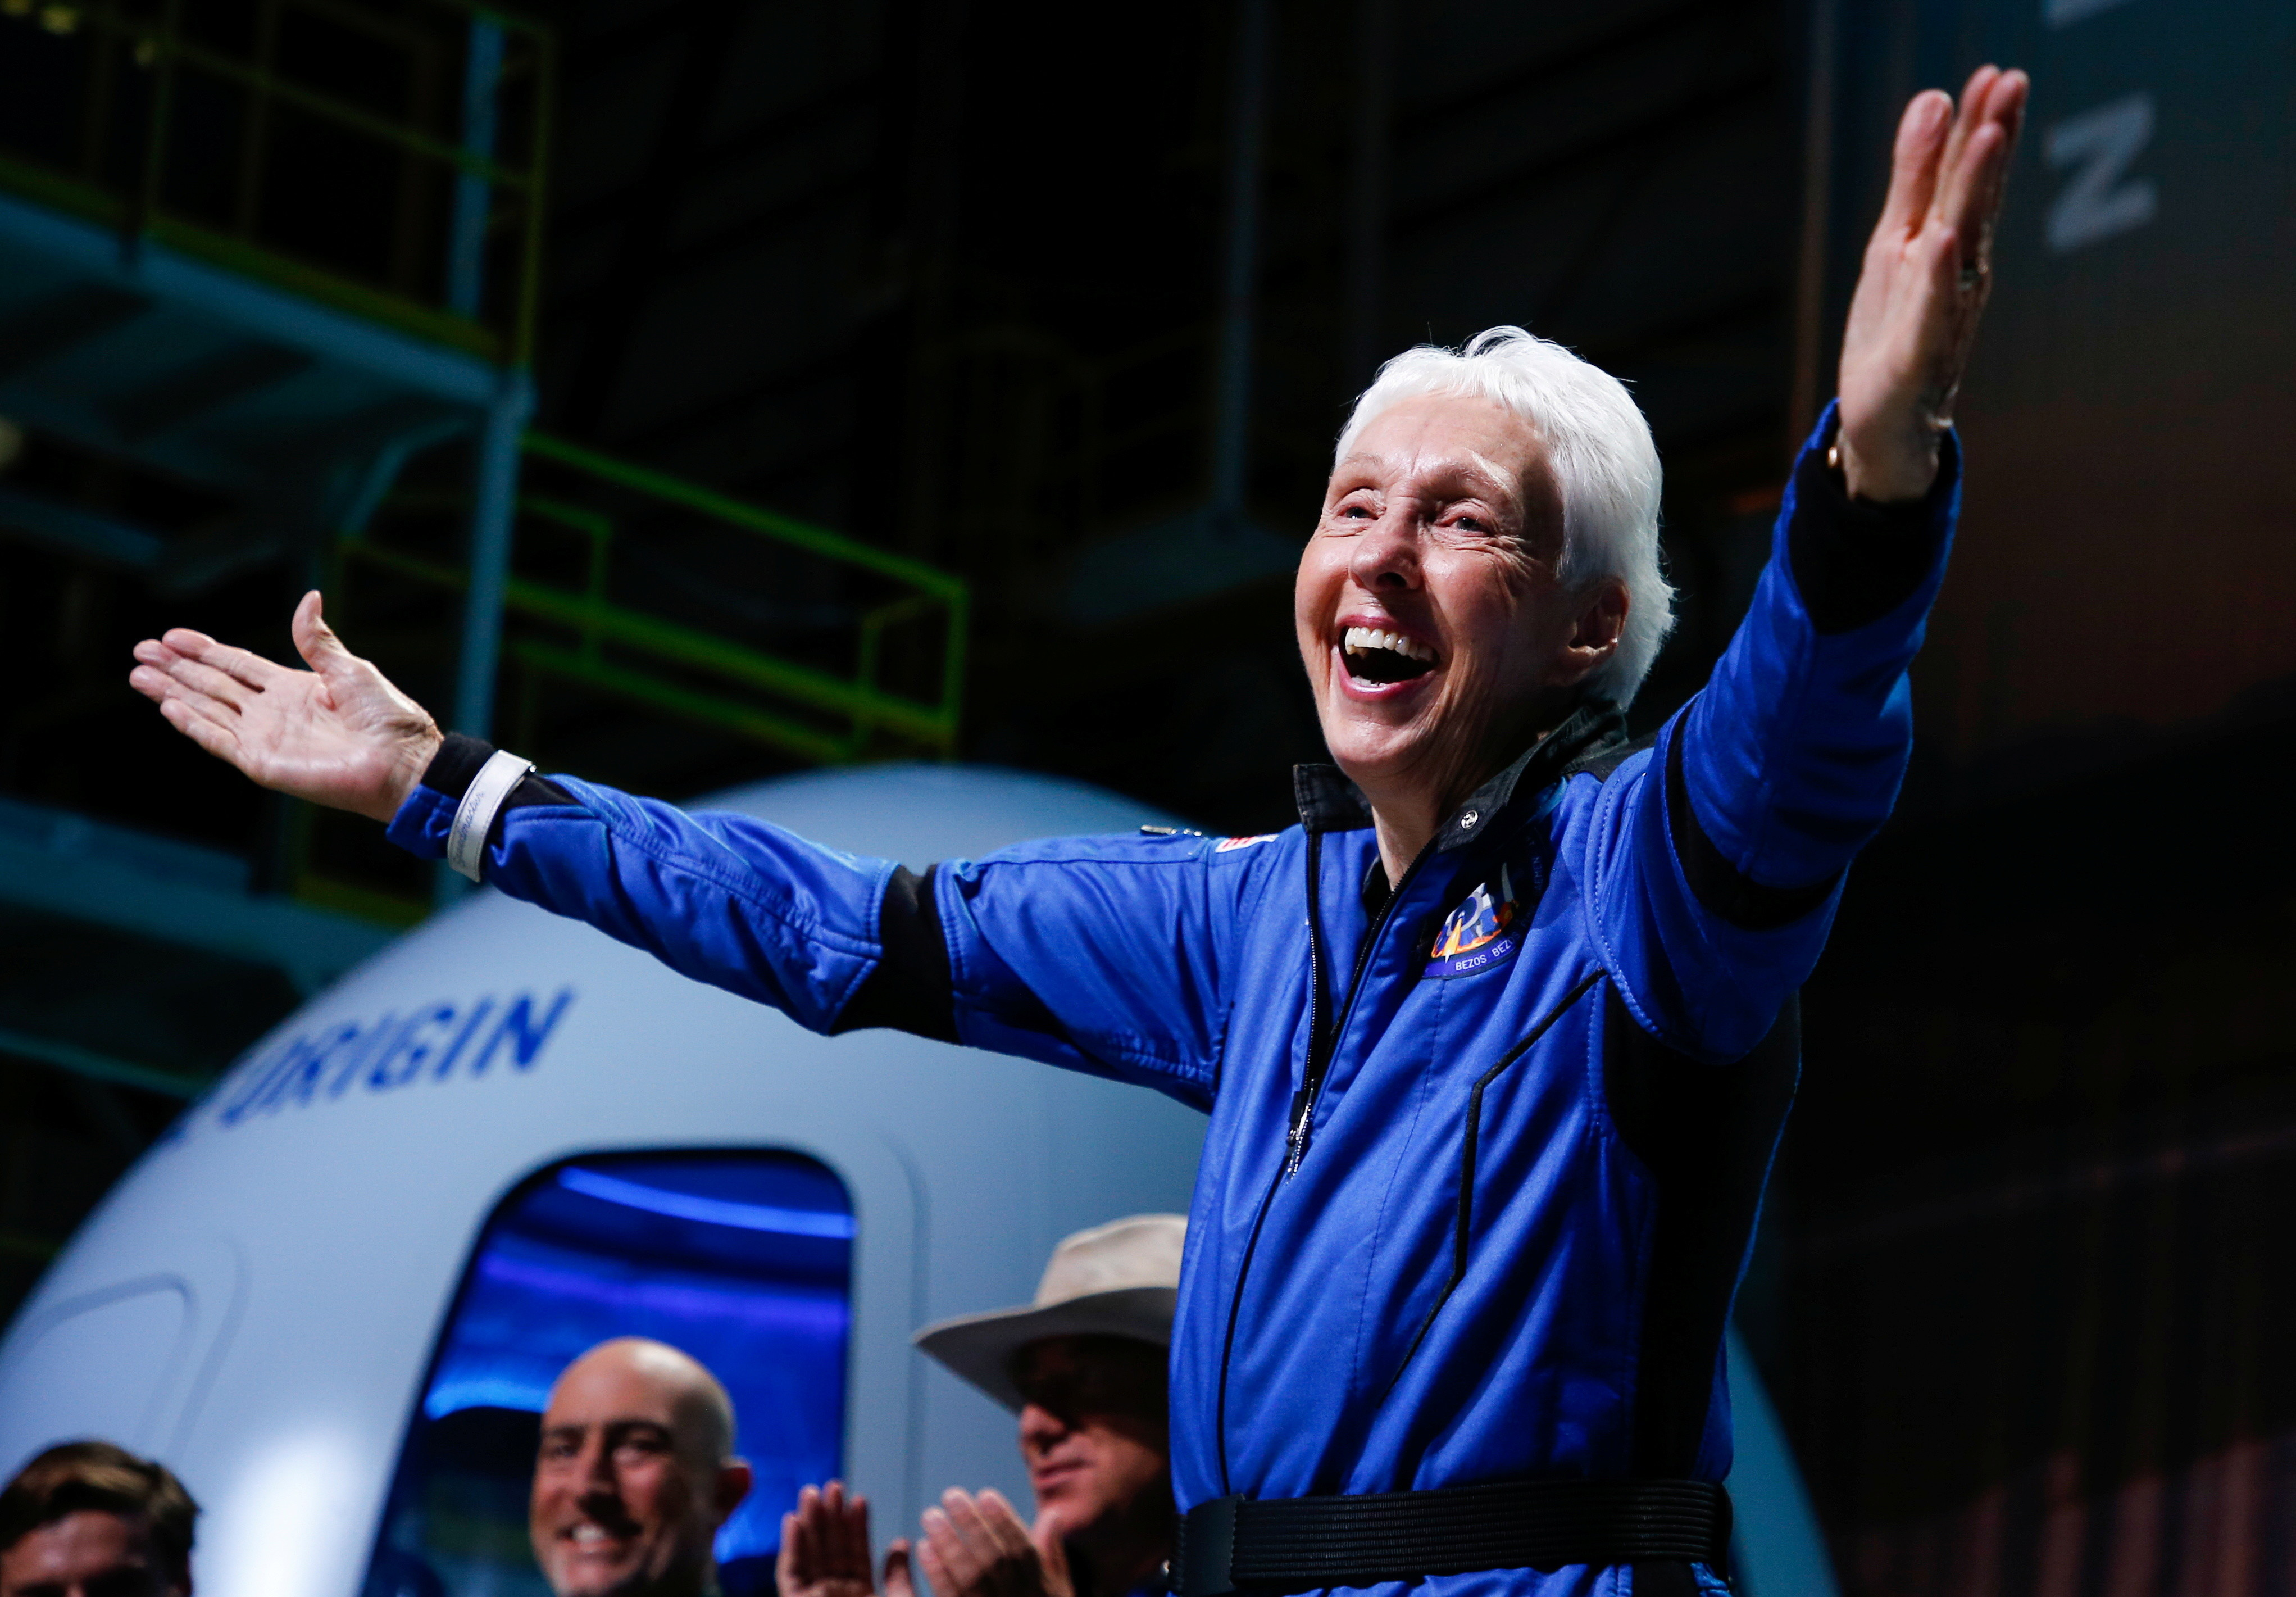 Wally Funk reacts after receiving her astronaut's wings from Blue Origin's Jeff Ashby, a former space shuttle commander at a post-launch press conference after she flew with three crewmates on Blue Origin's inaugural flight to the edge of space.